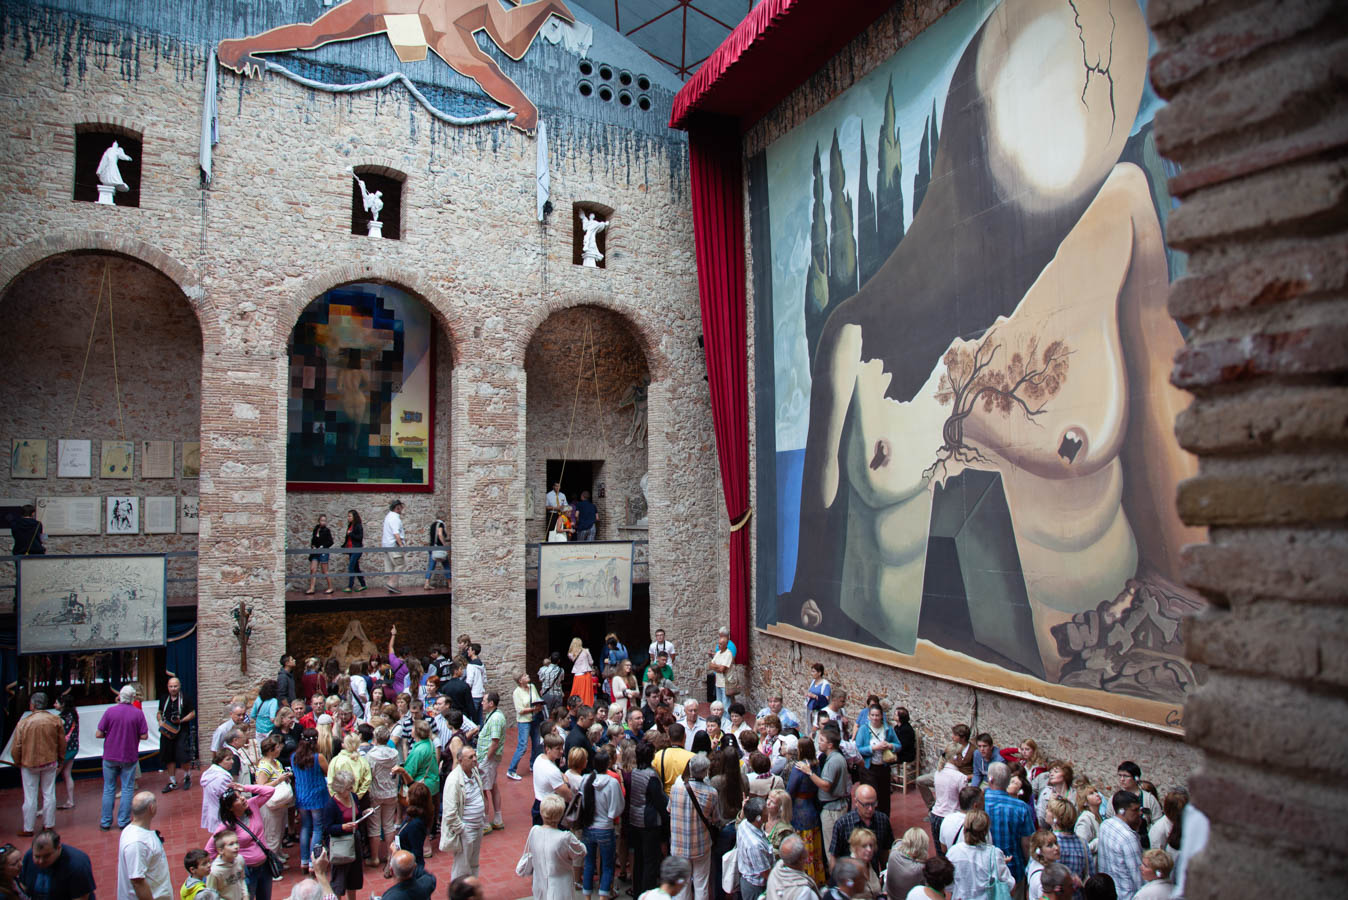 Visit the Salvador Dali Theatre Museum in Figueres